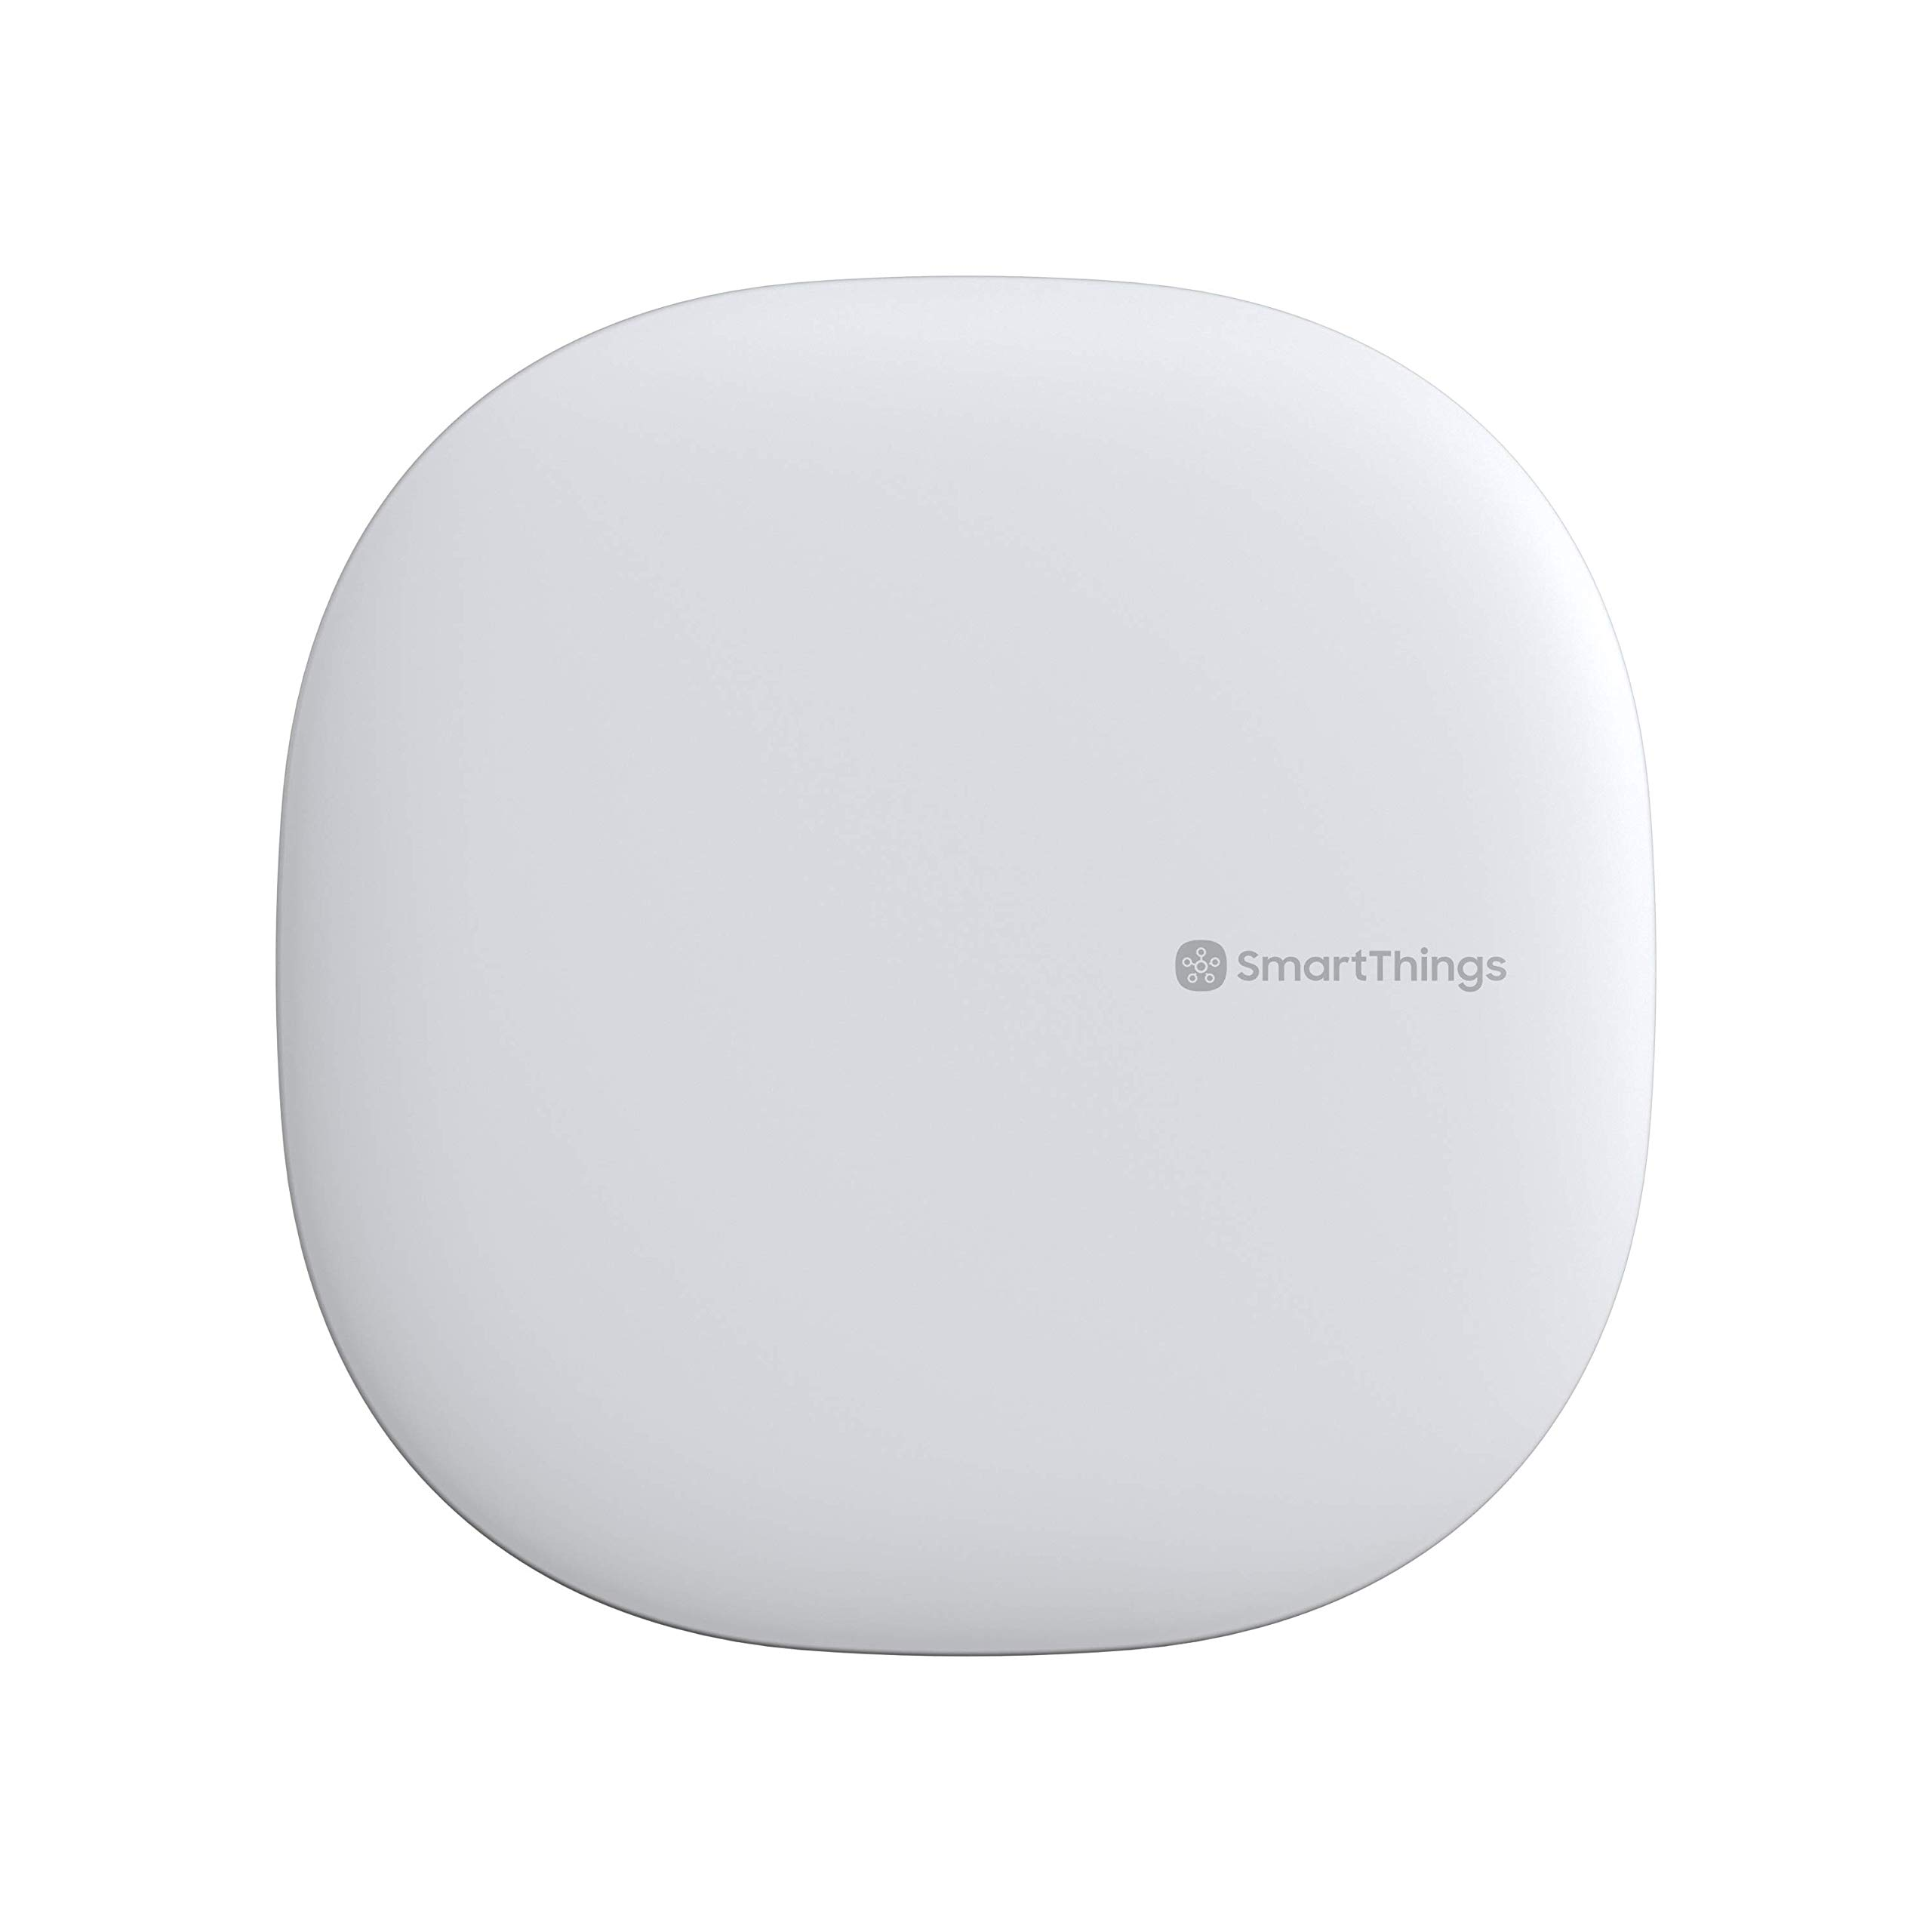 Samsung SmartThings V3 Hub - 3rd Generation (2018) - European Version